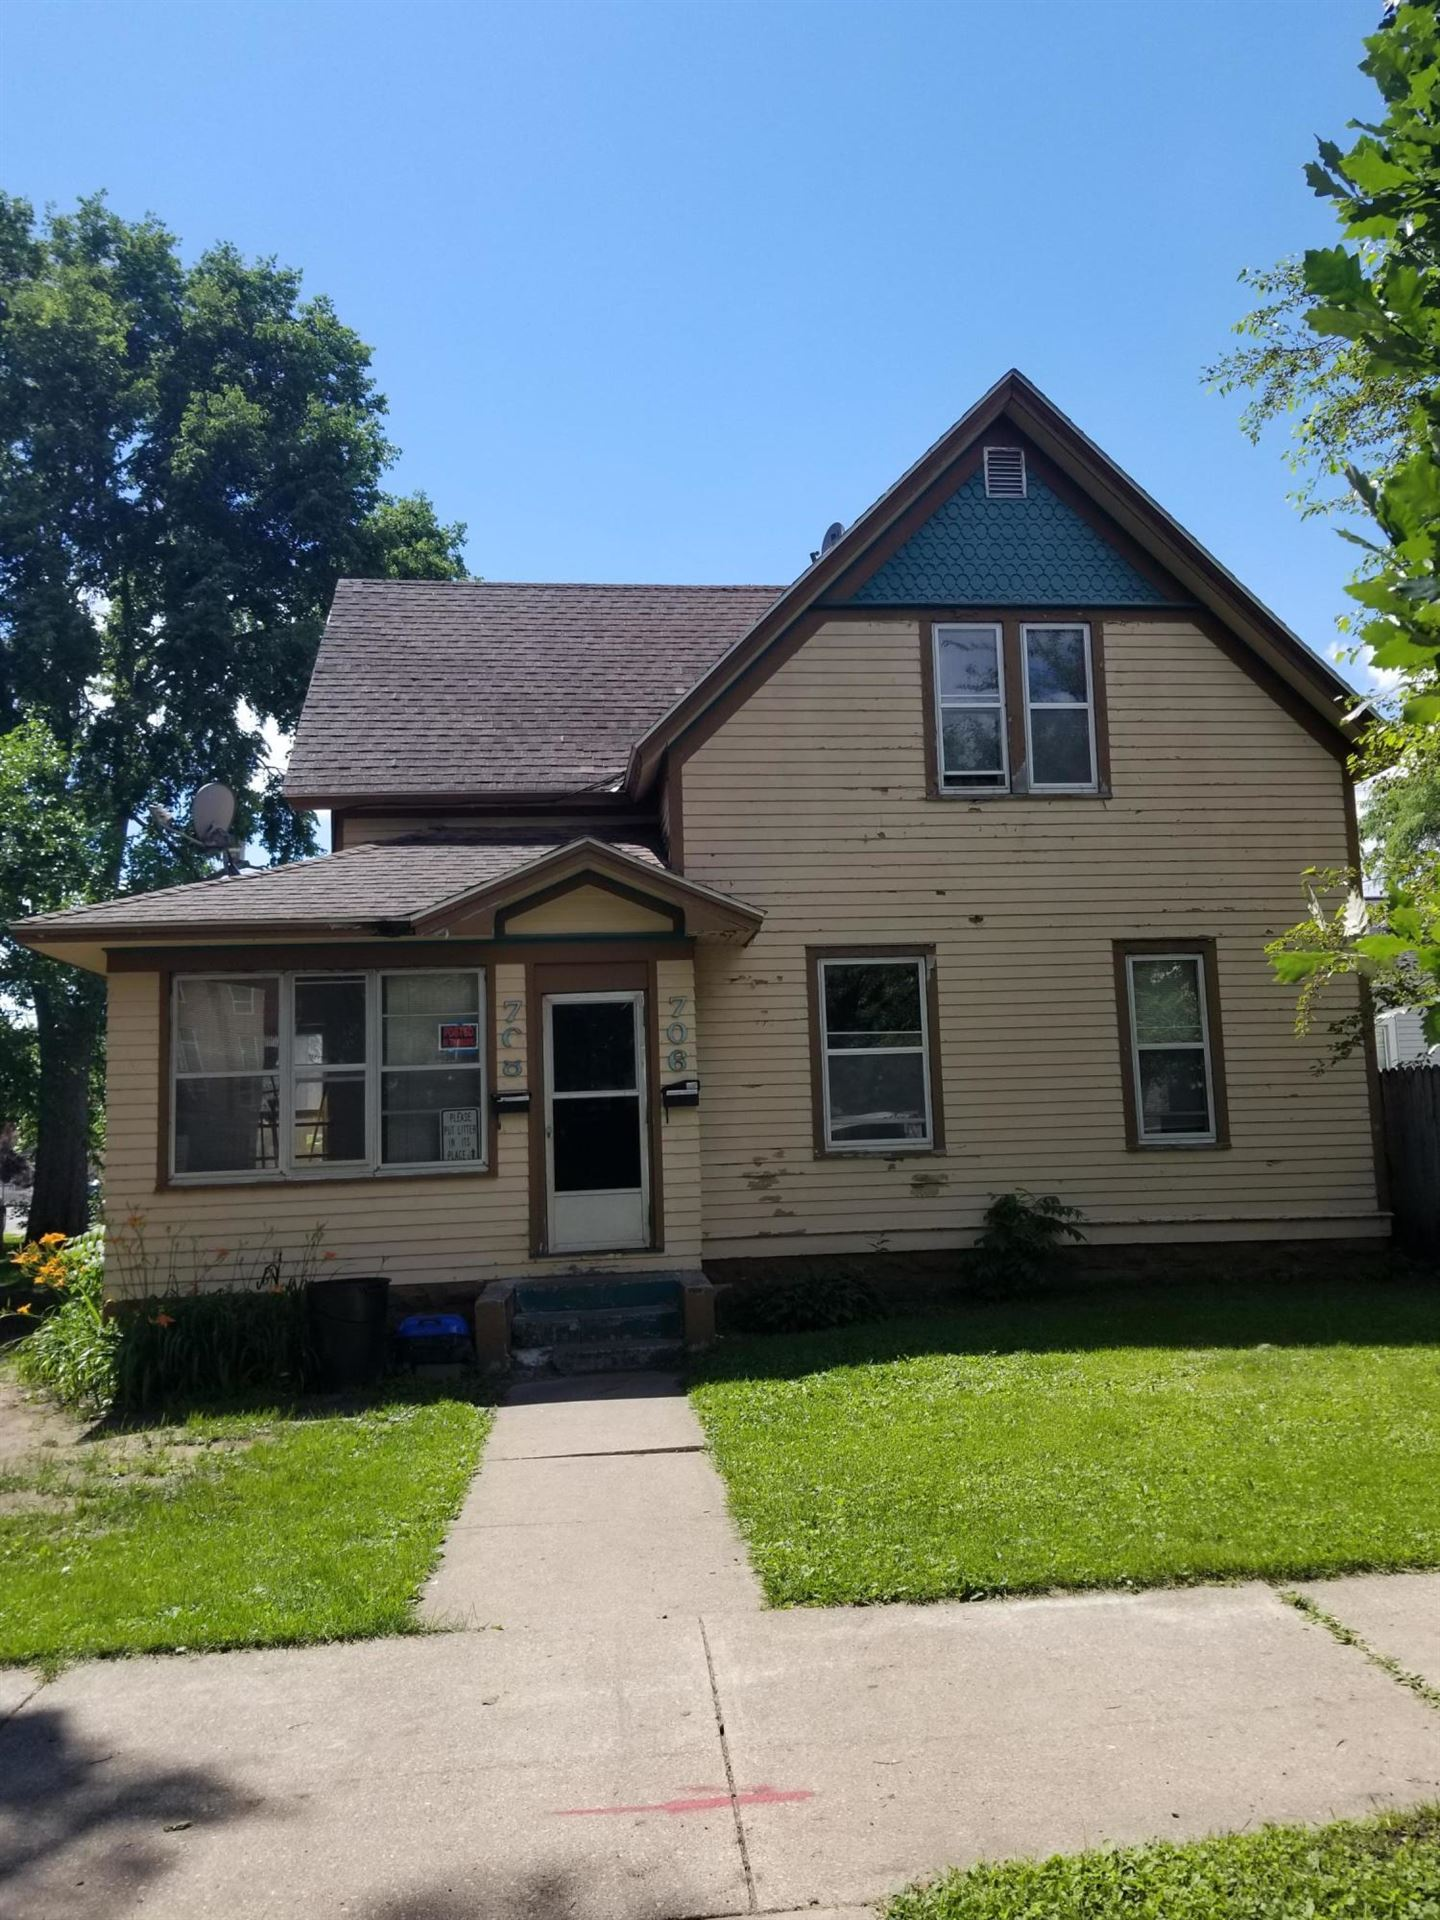 706 7th St S #708, La Crosse, WI 54601 - MLS#: 1696659